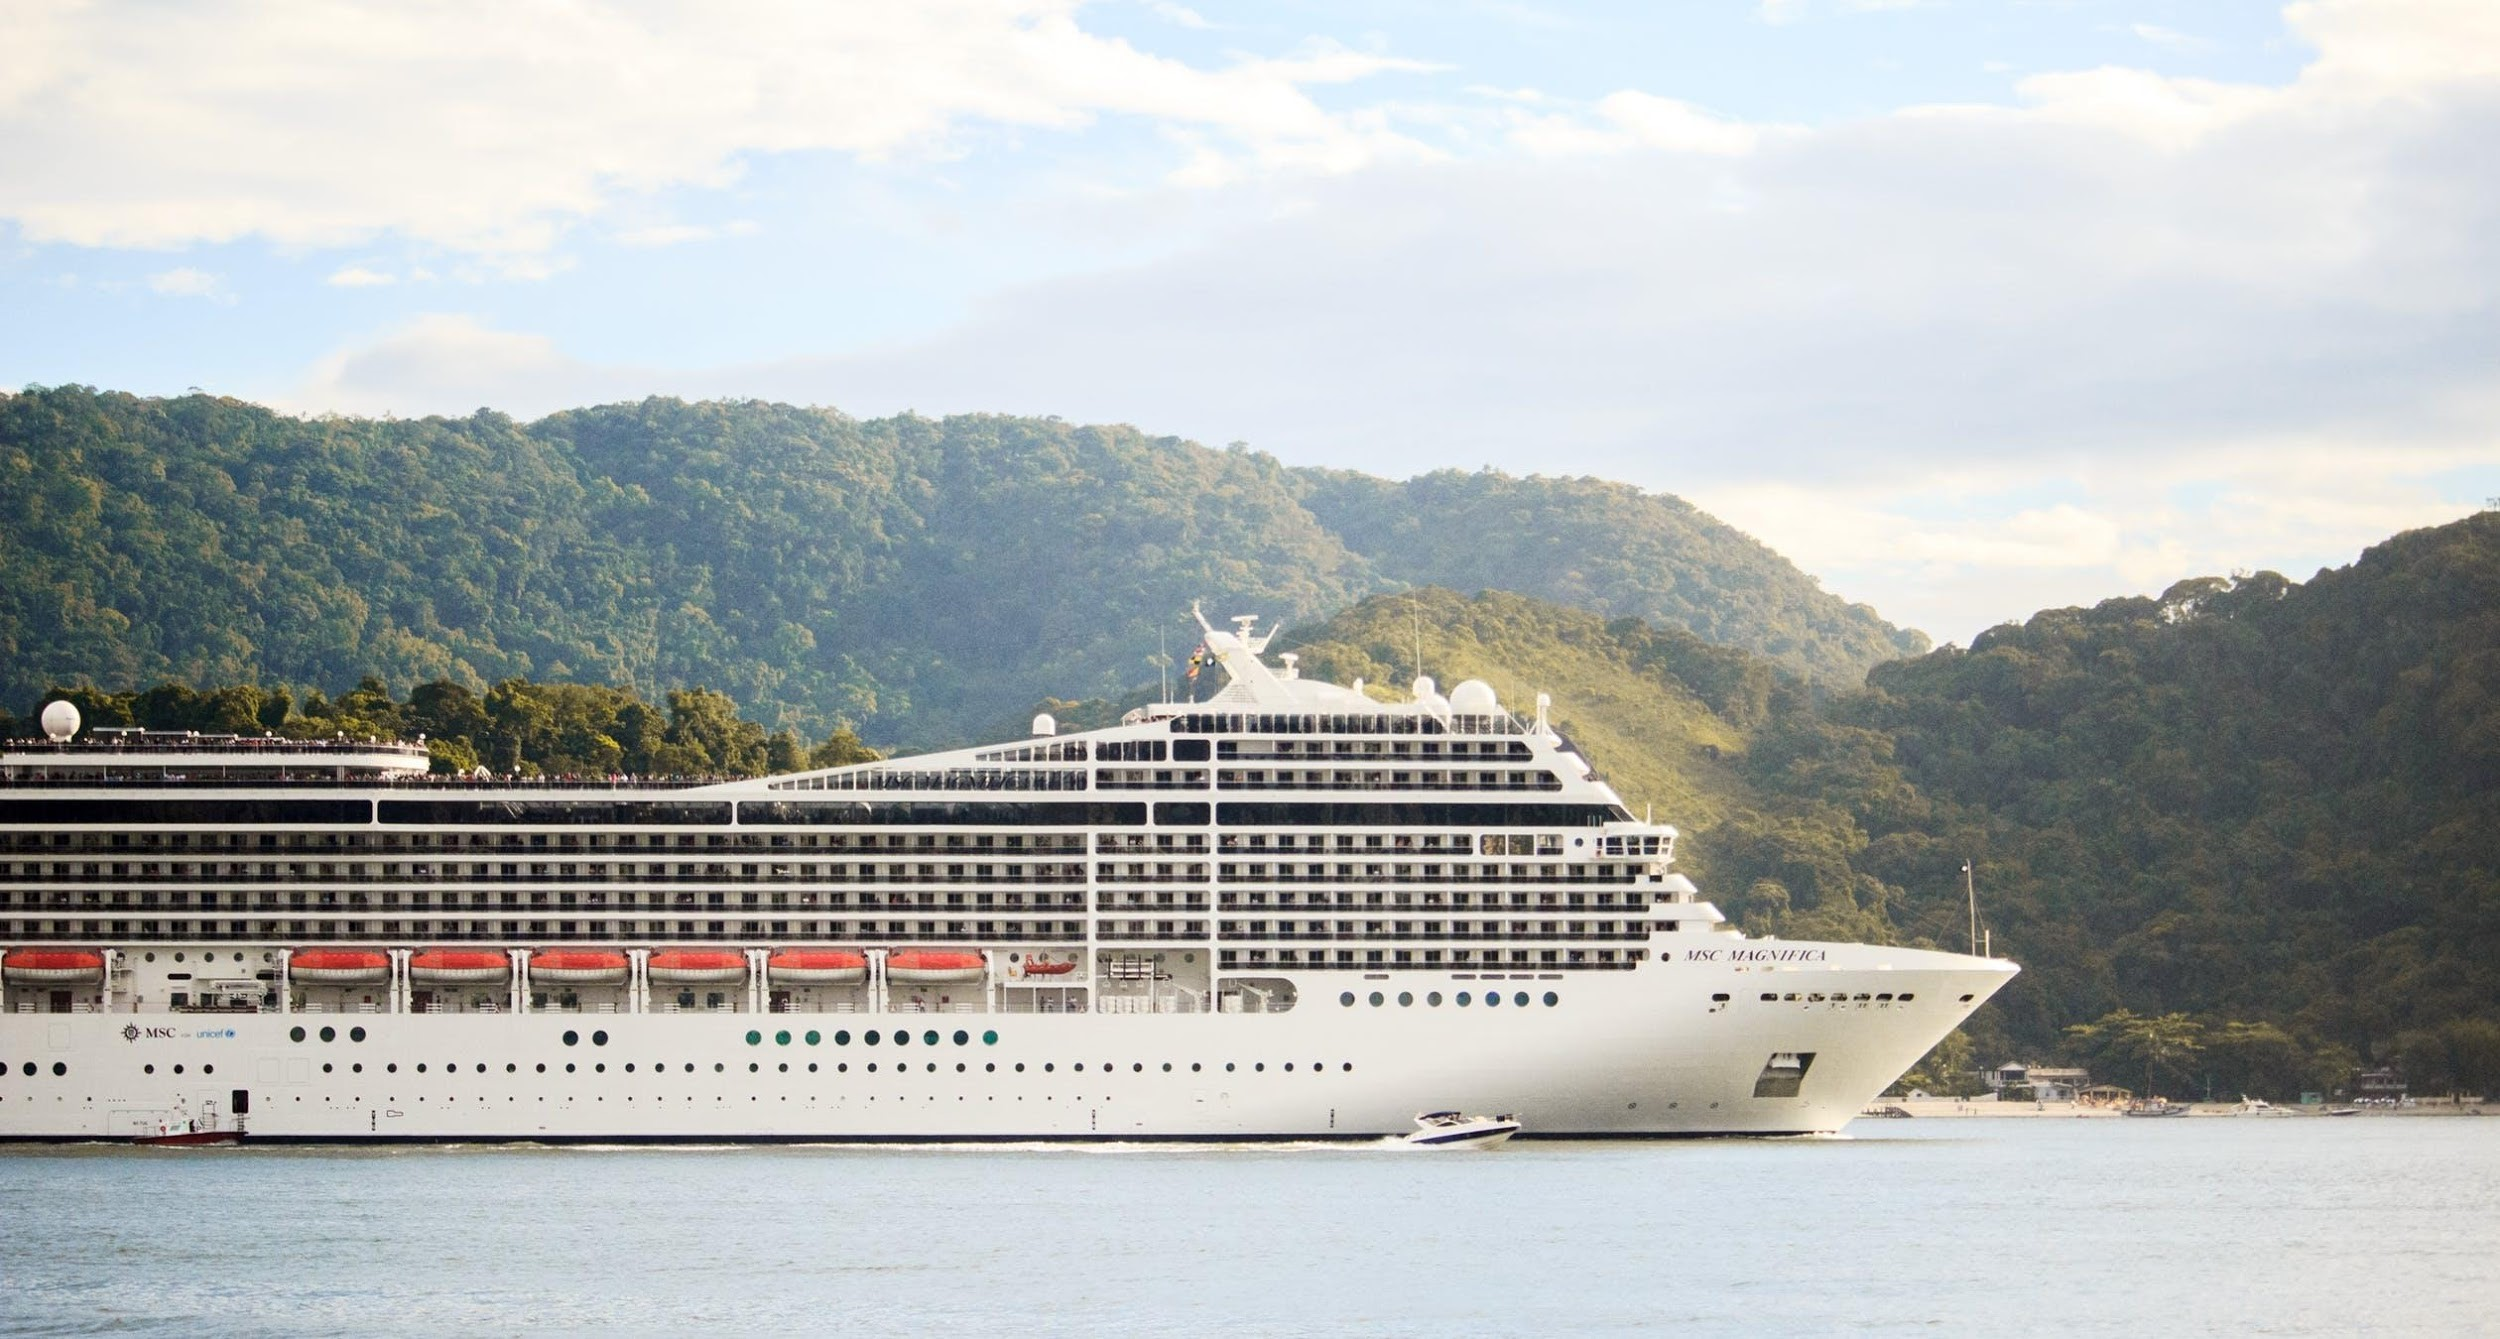 5 Reasons Why You Should Go on a Cruise Trip